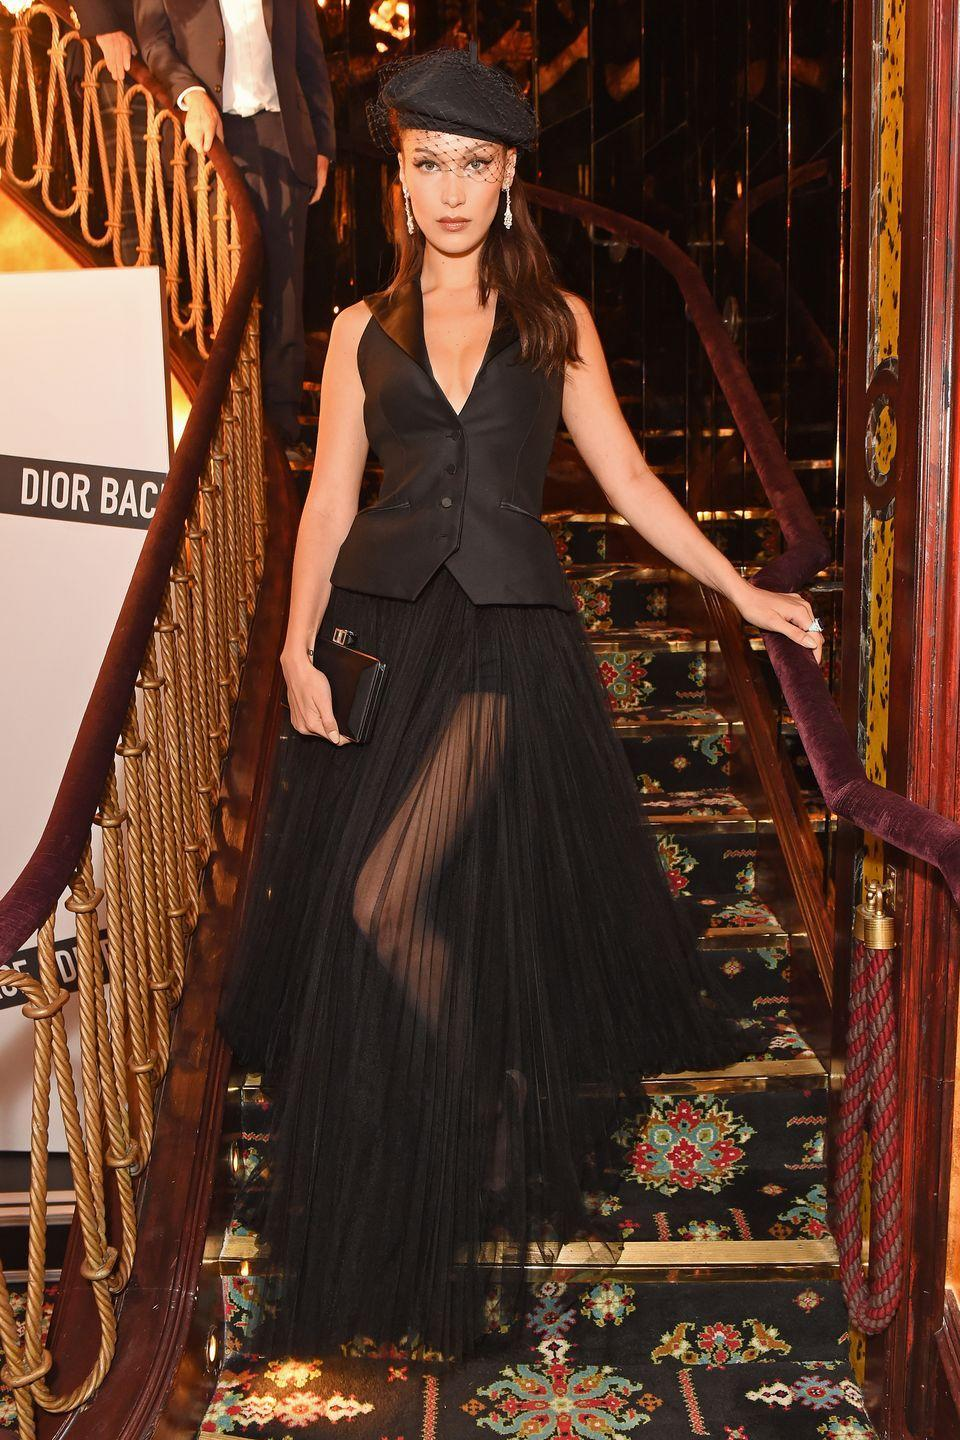 <p>In a black beret with a fishnet veil, satin vest, sheer ball skirt, black clutch, and diamond dangling earrings while attending the Dior Backstage launch party in London.</p>